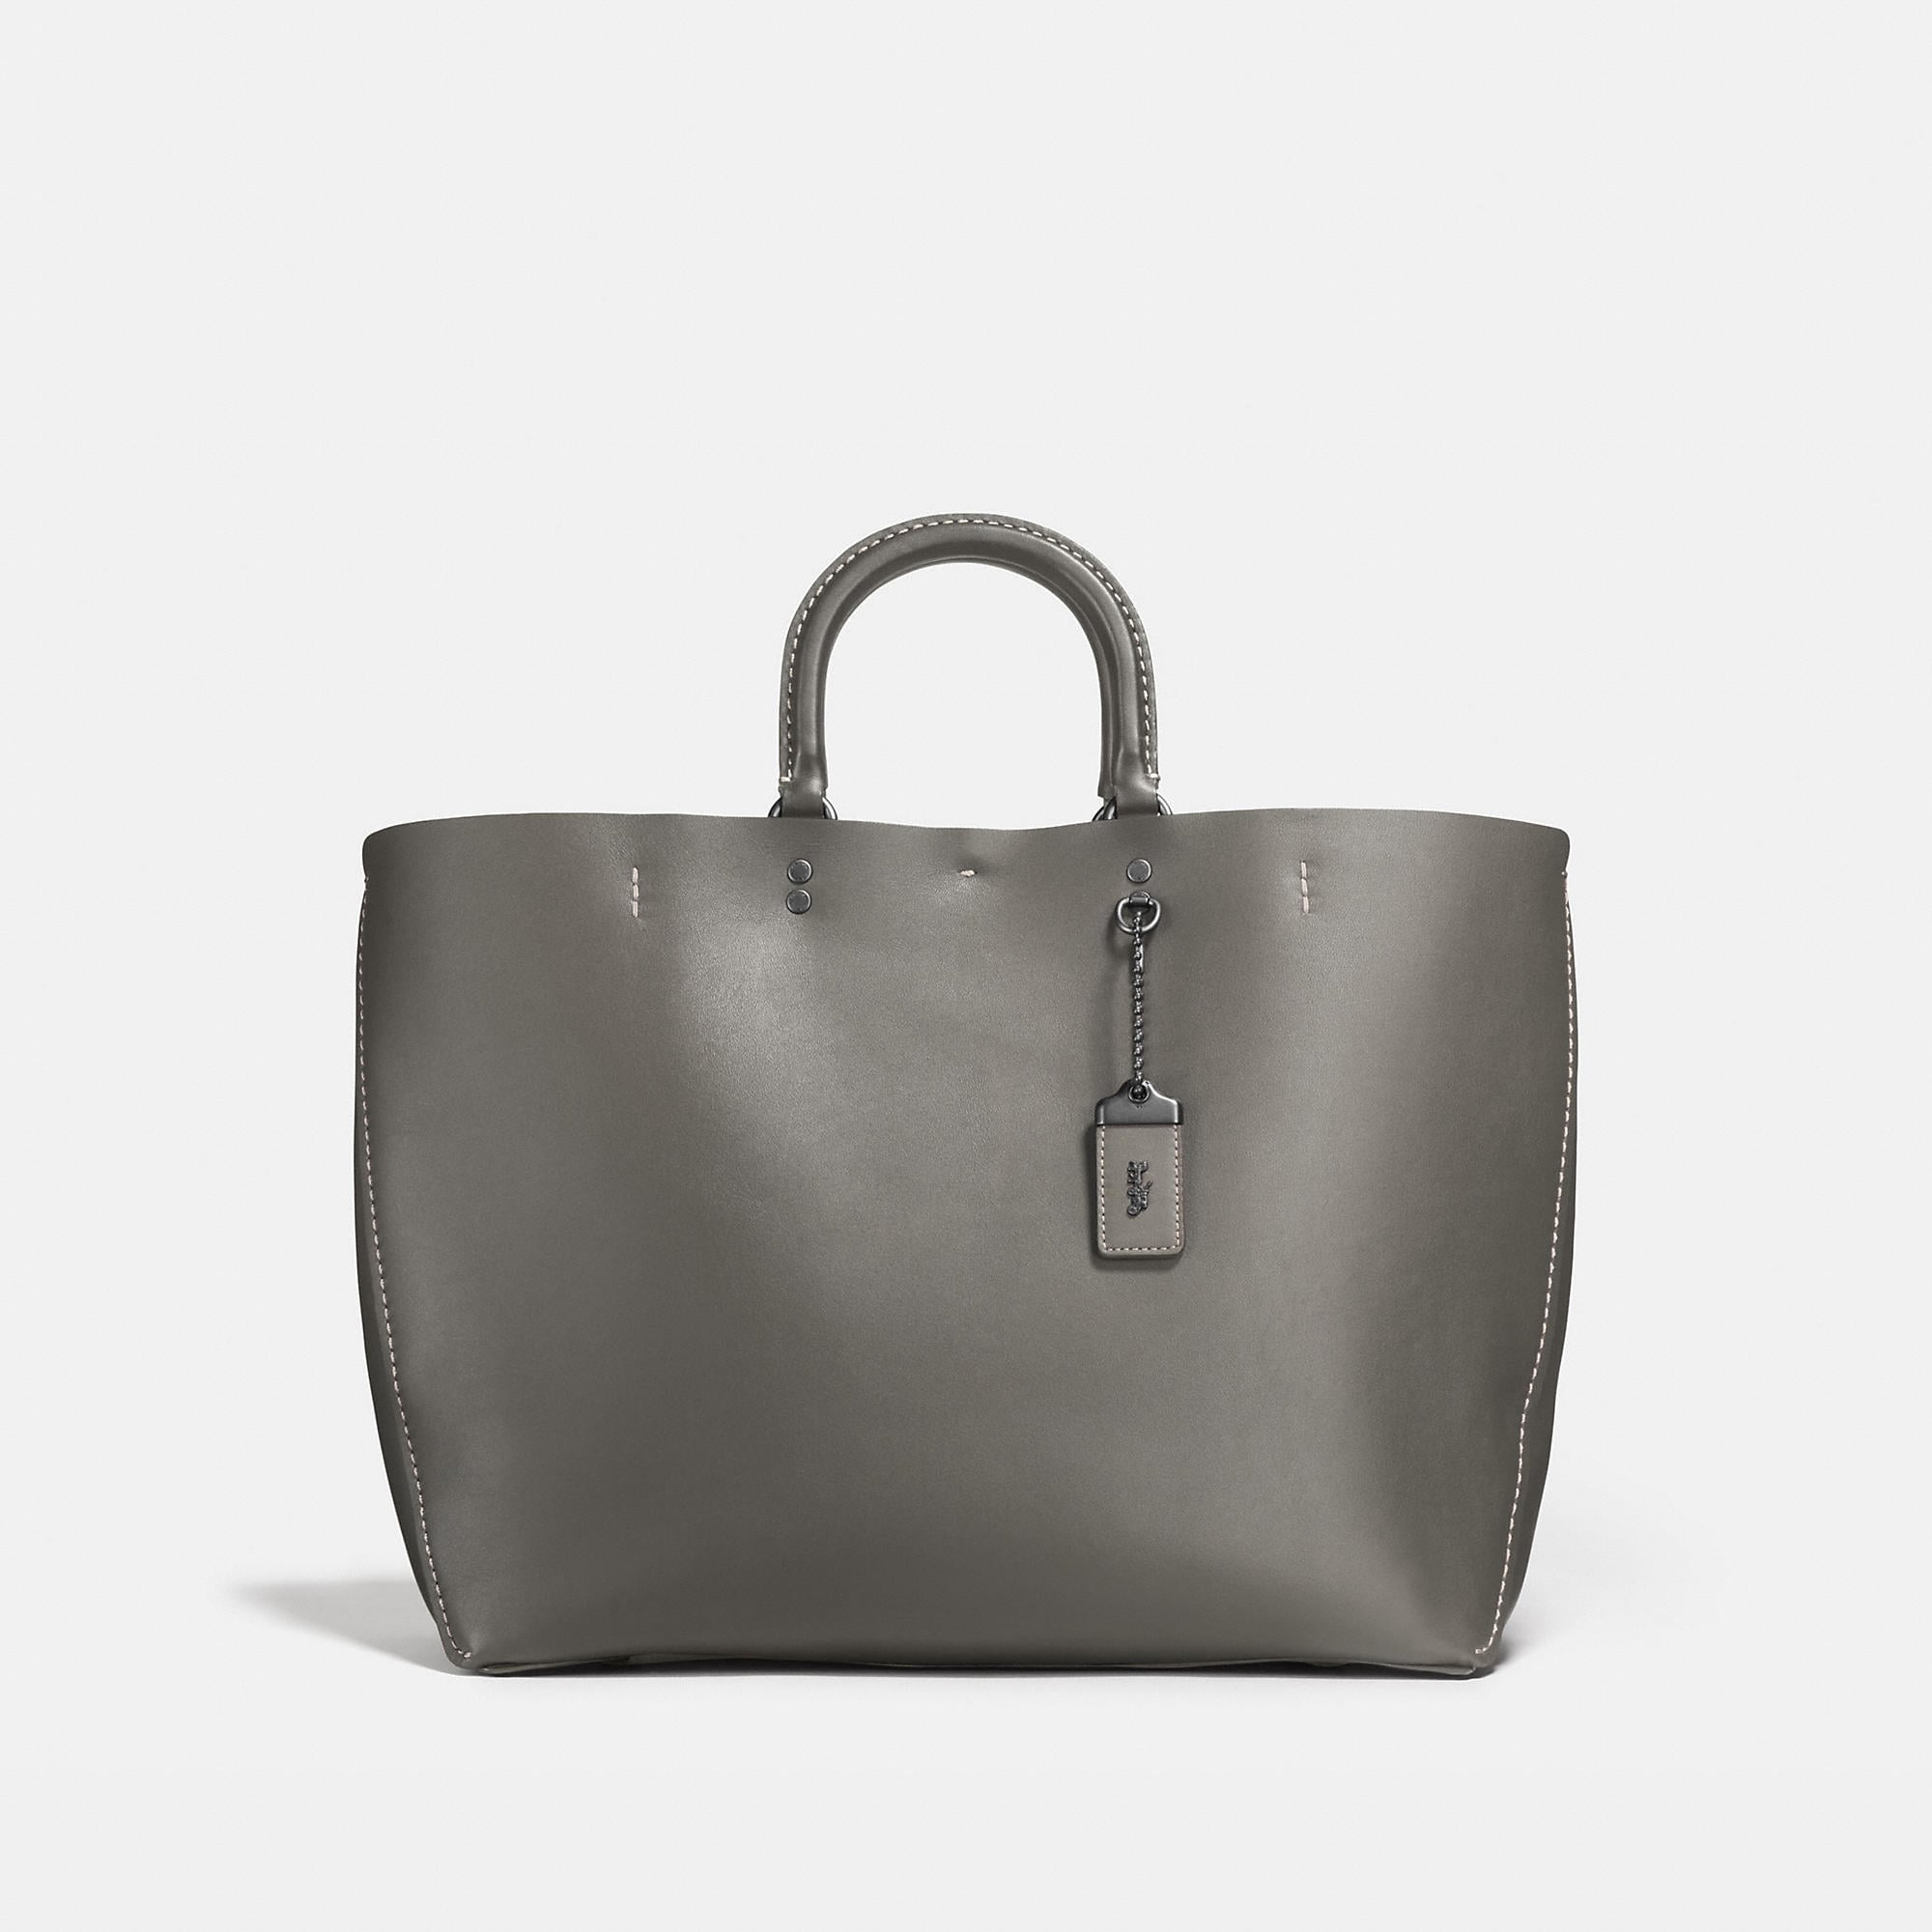 Coach Rogue Tote In Glovetanned Calf Leather